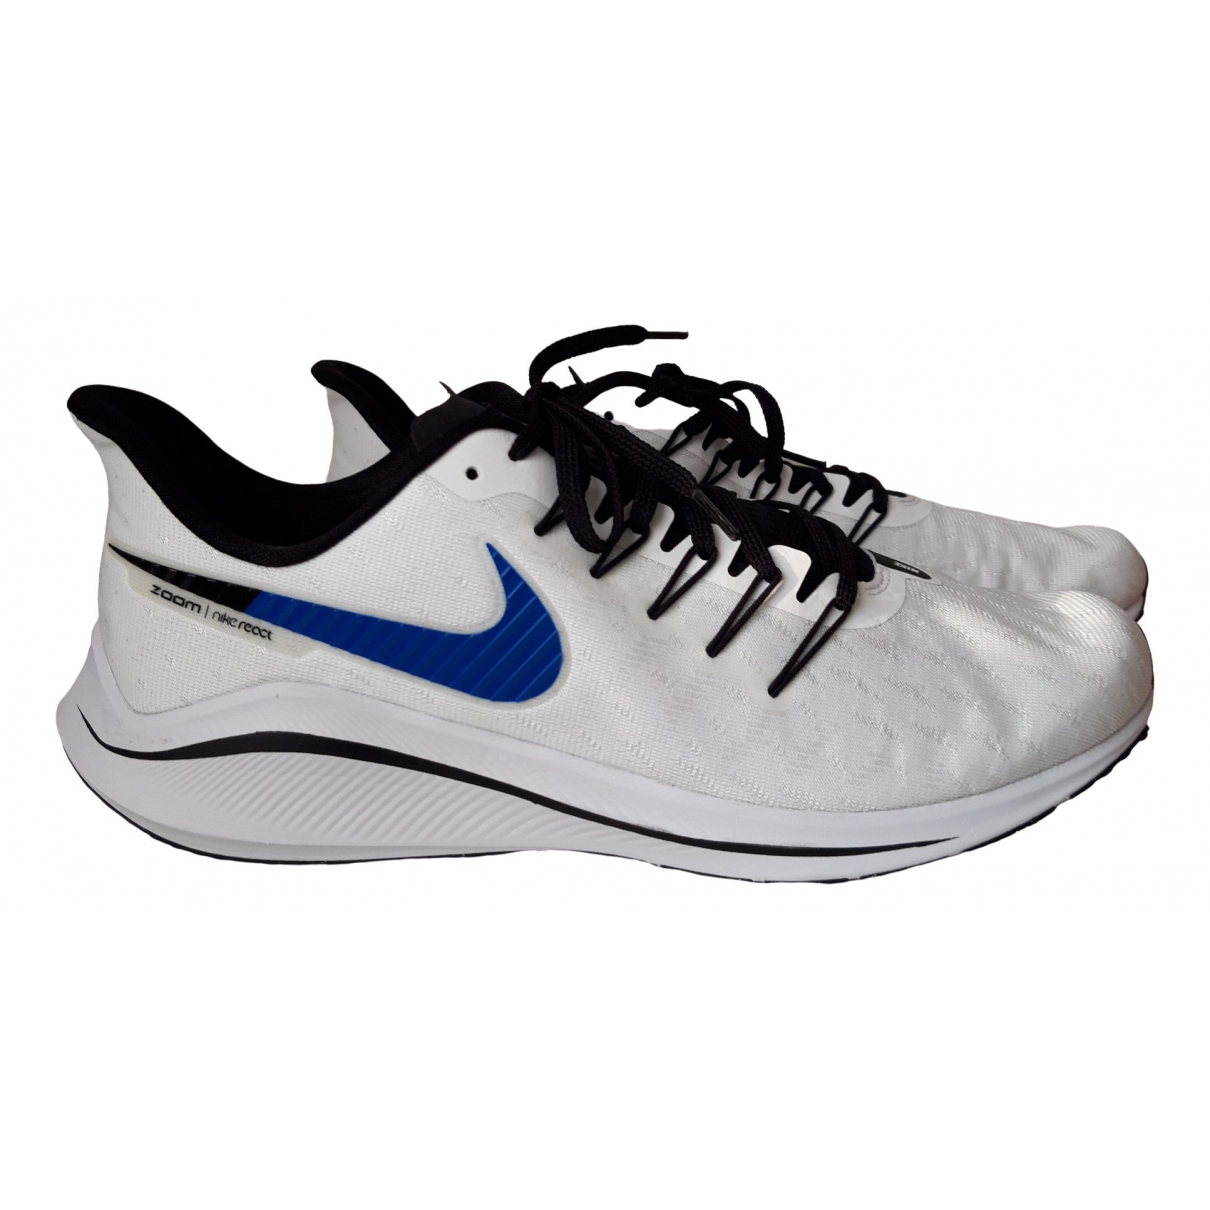 Nike Zoom Vomero White Cloth Trainers for Men 11 US